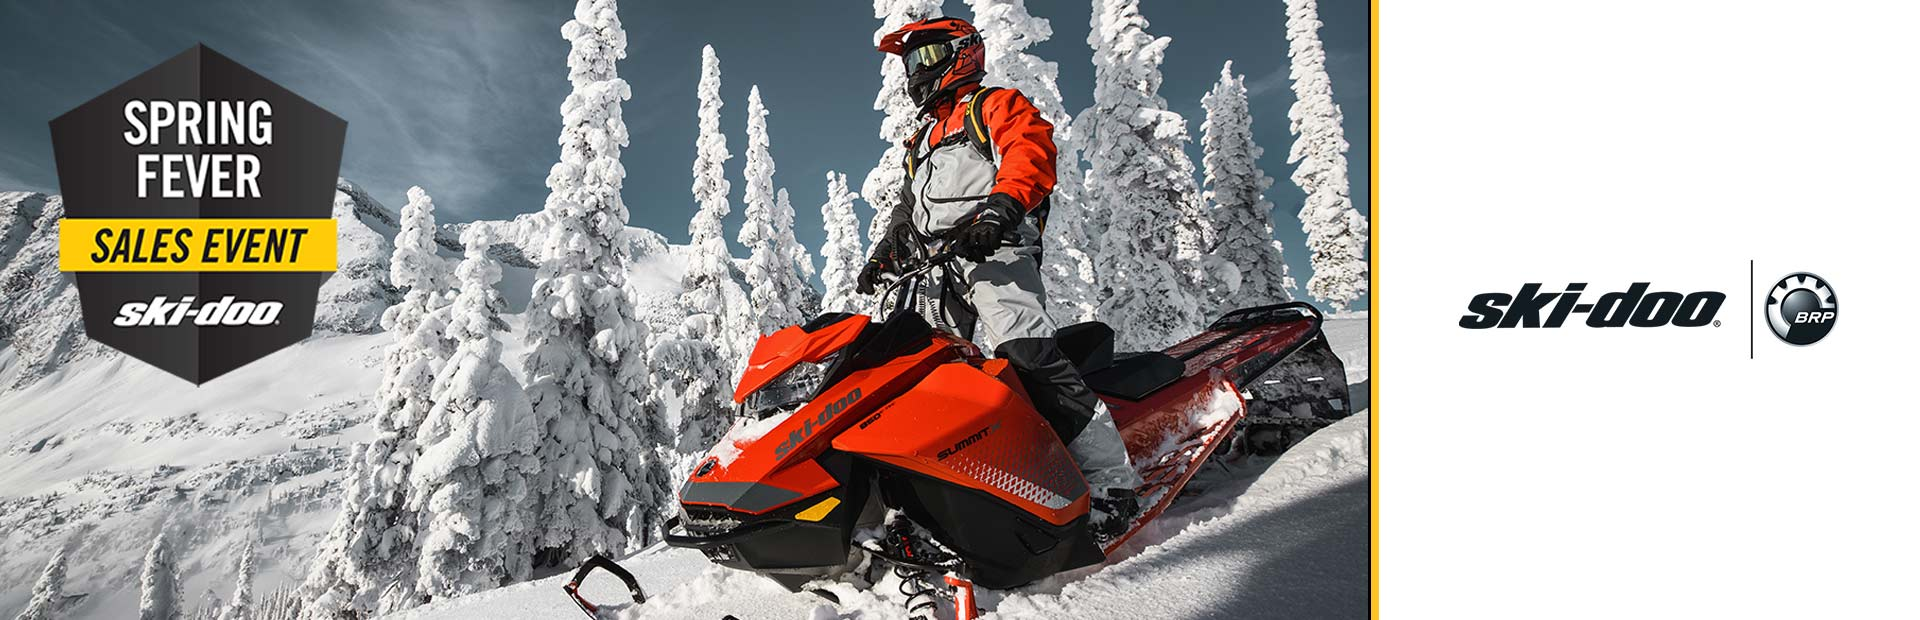 Ski-Doo: Spring Fever Sales Event